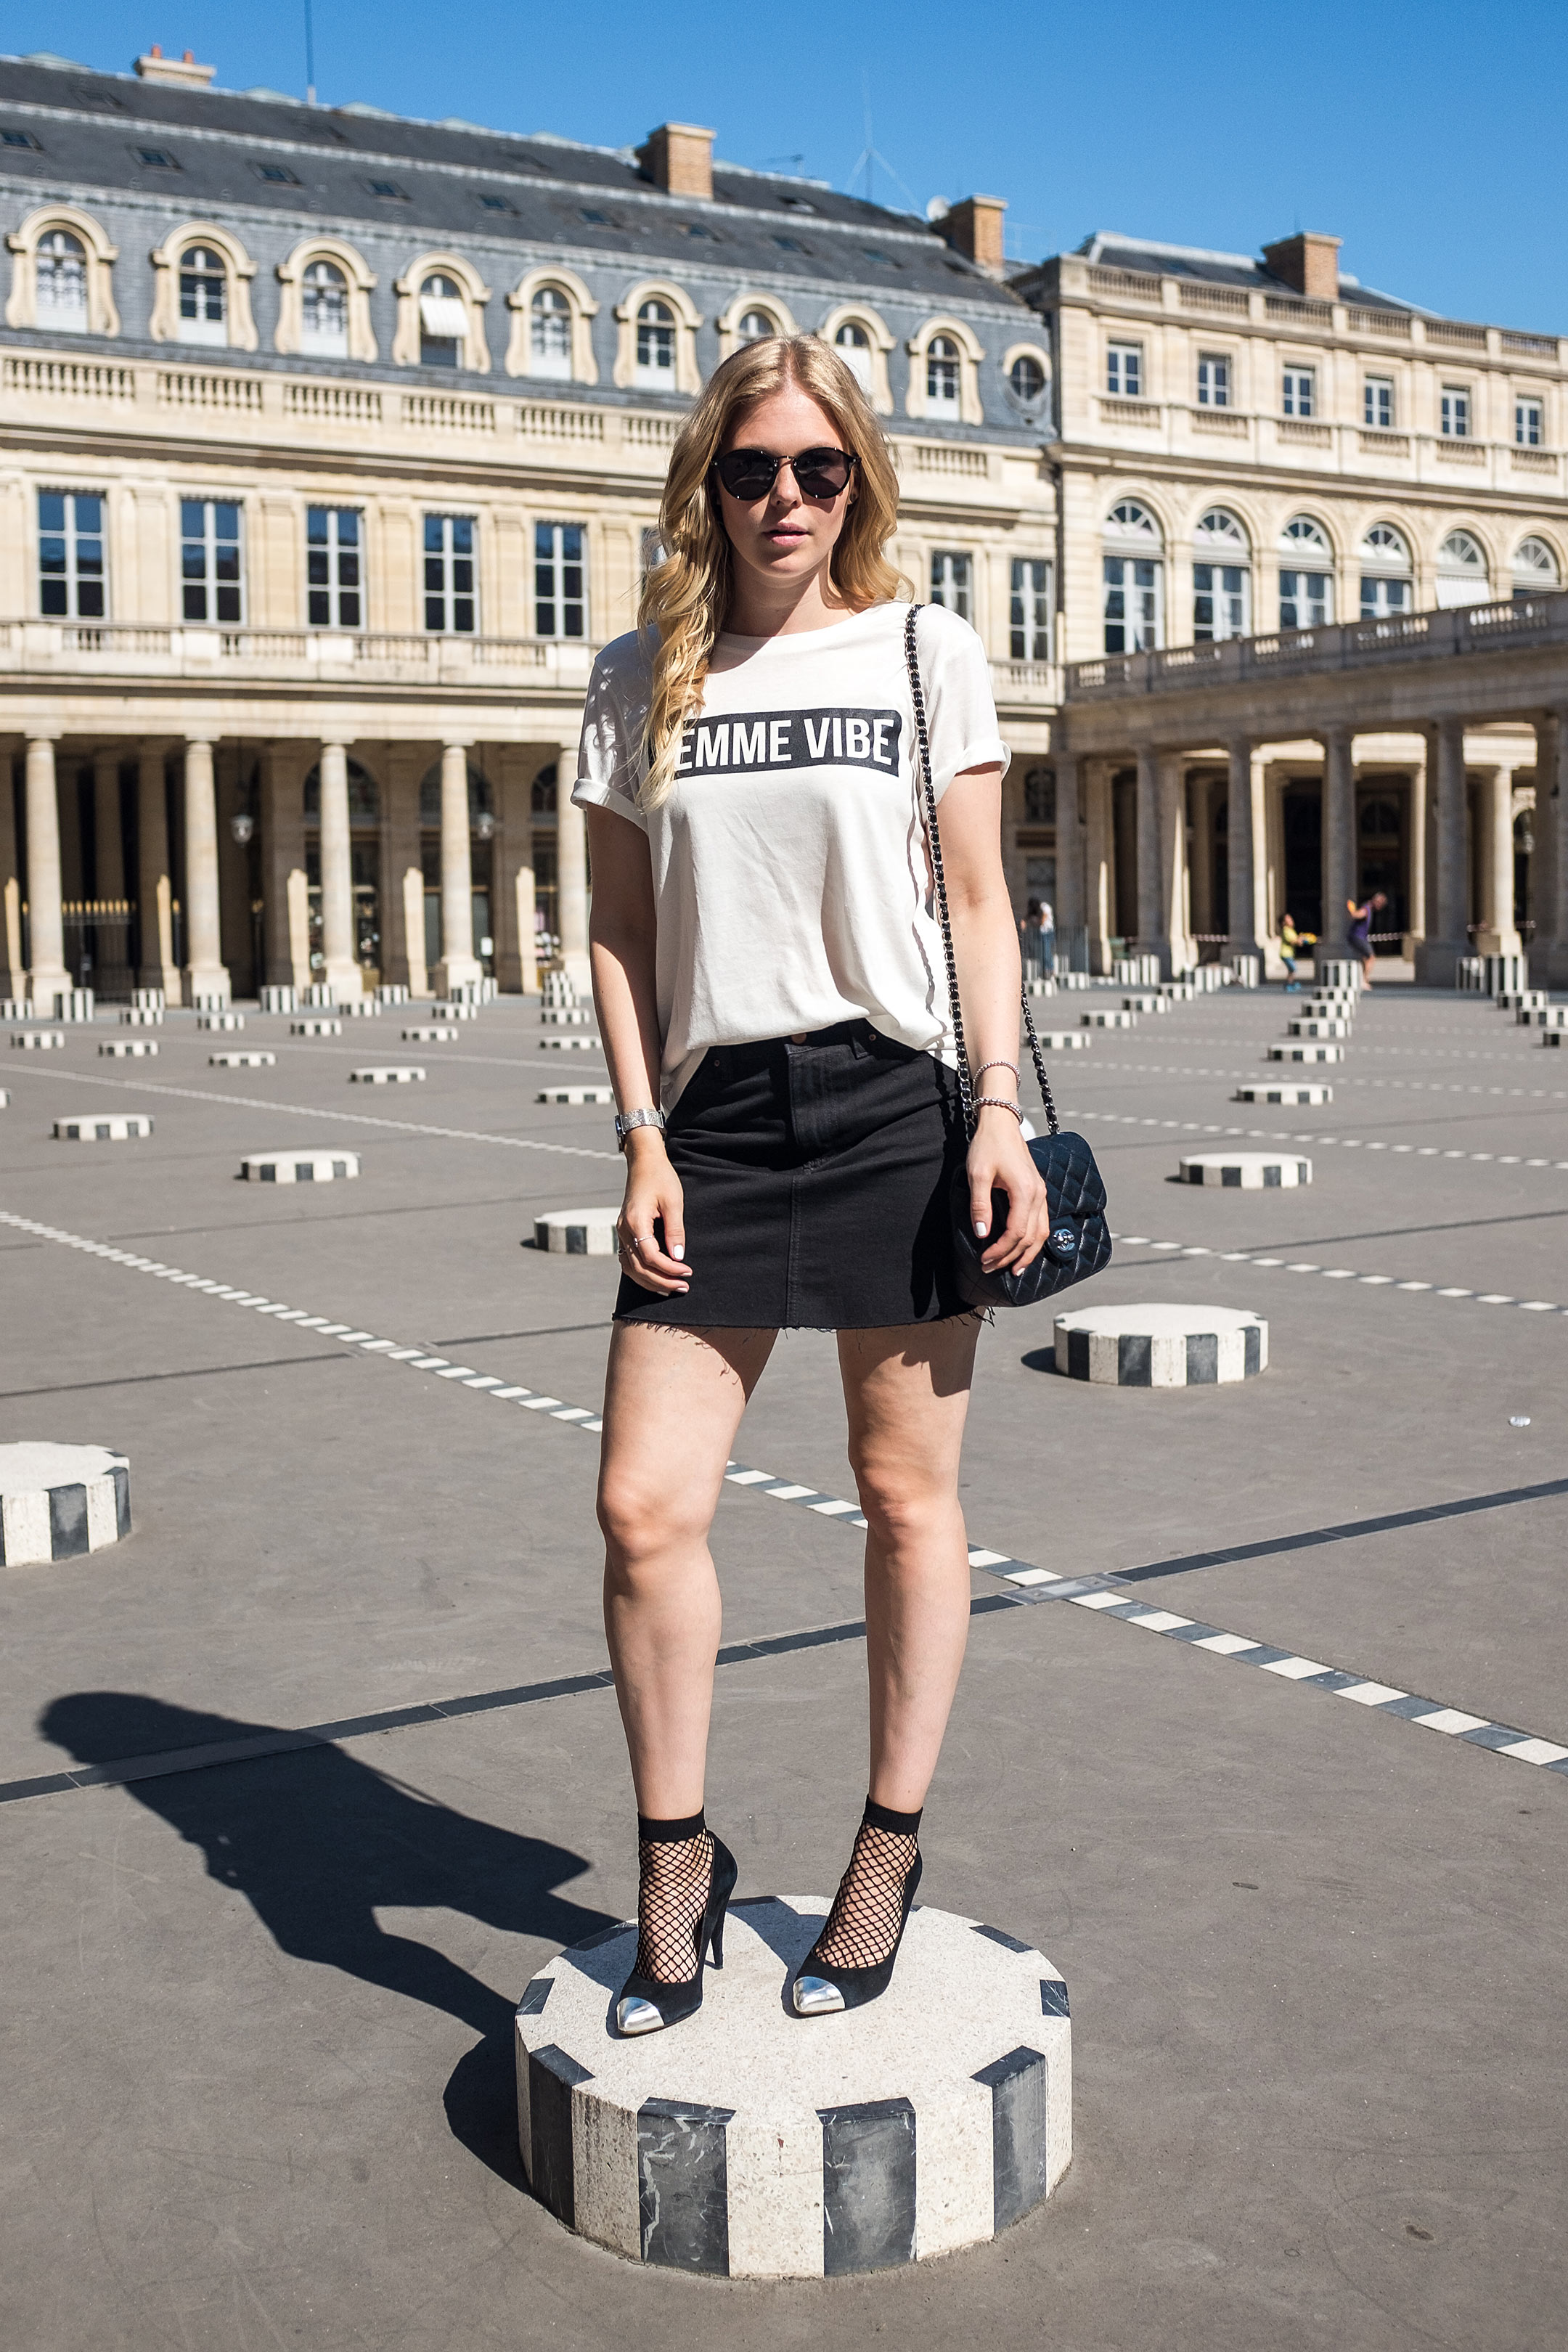 Sunnyinga Paris Oufit Parisian Girl Fashionblog